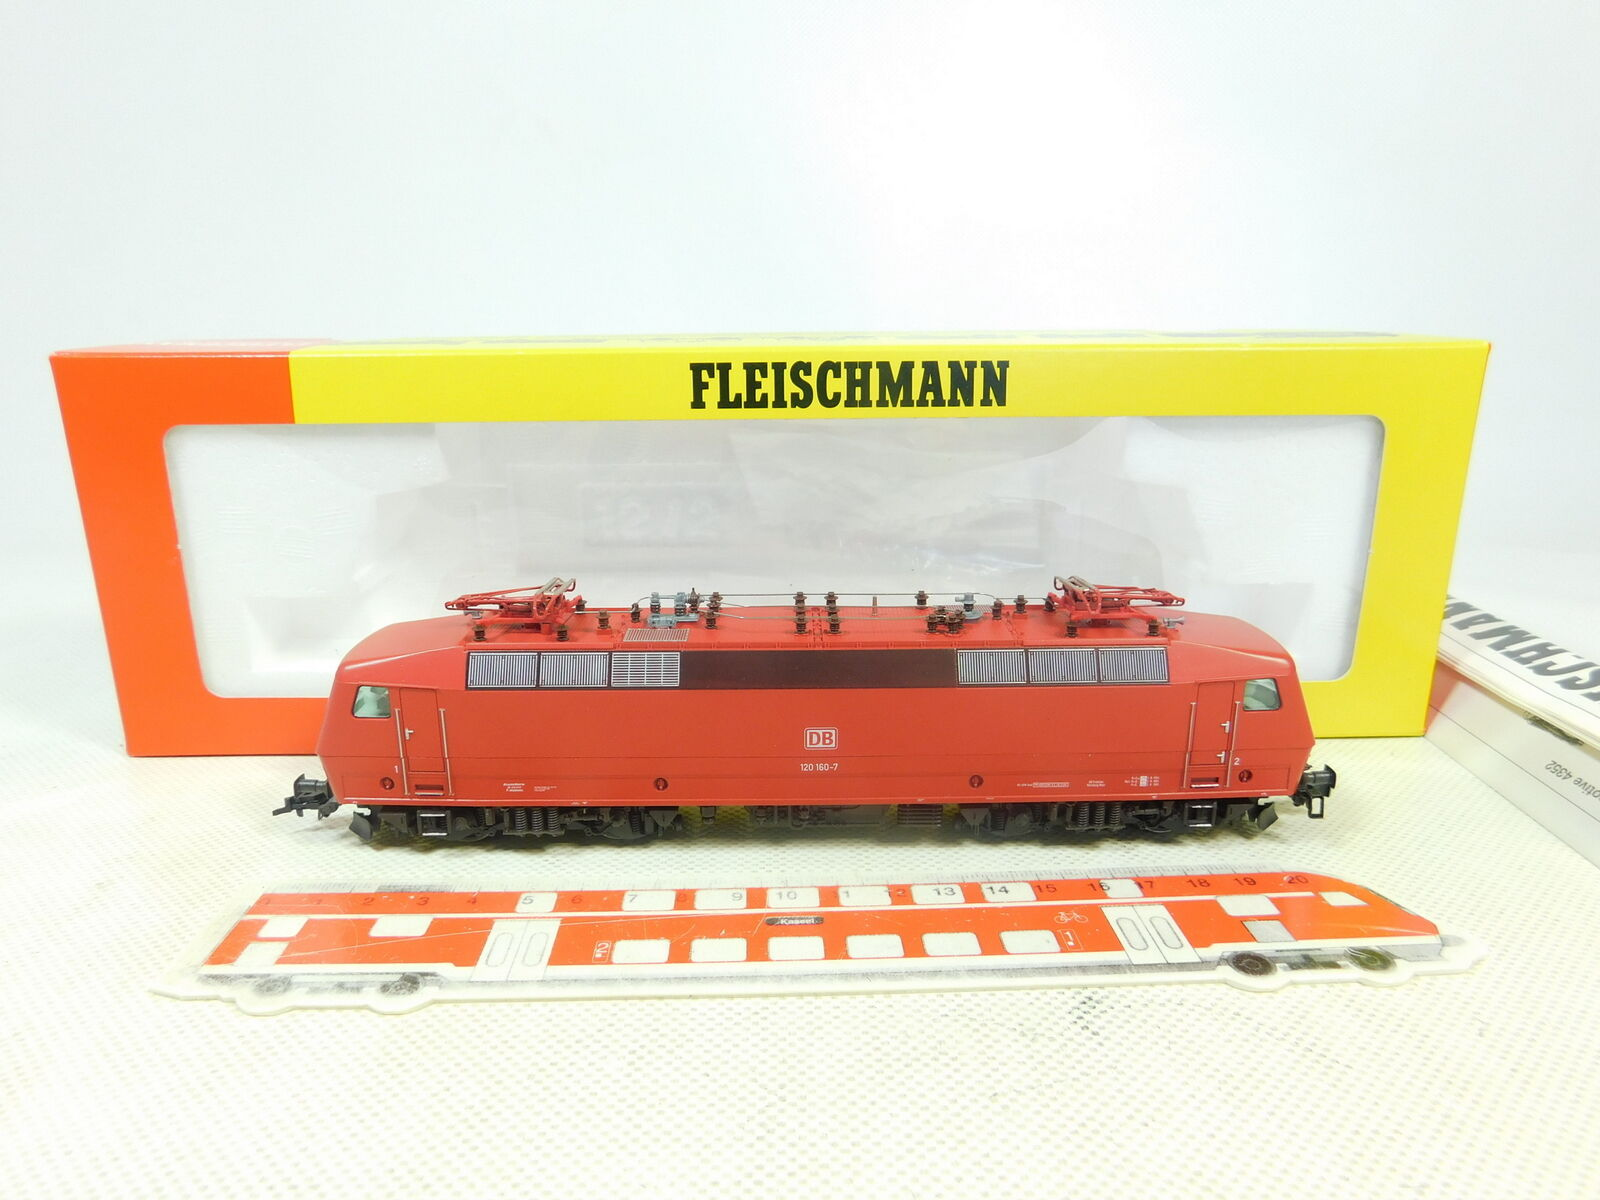 Fleischmann bt117-1h0 dc 4352 Electric Locomotive Locomotive 120 160-7